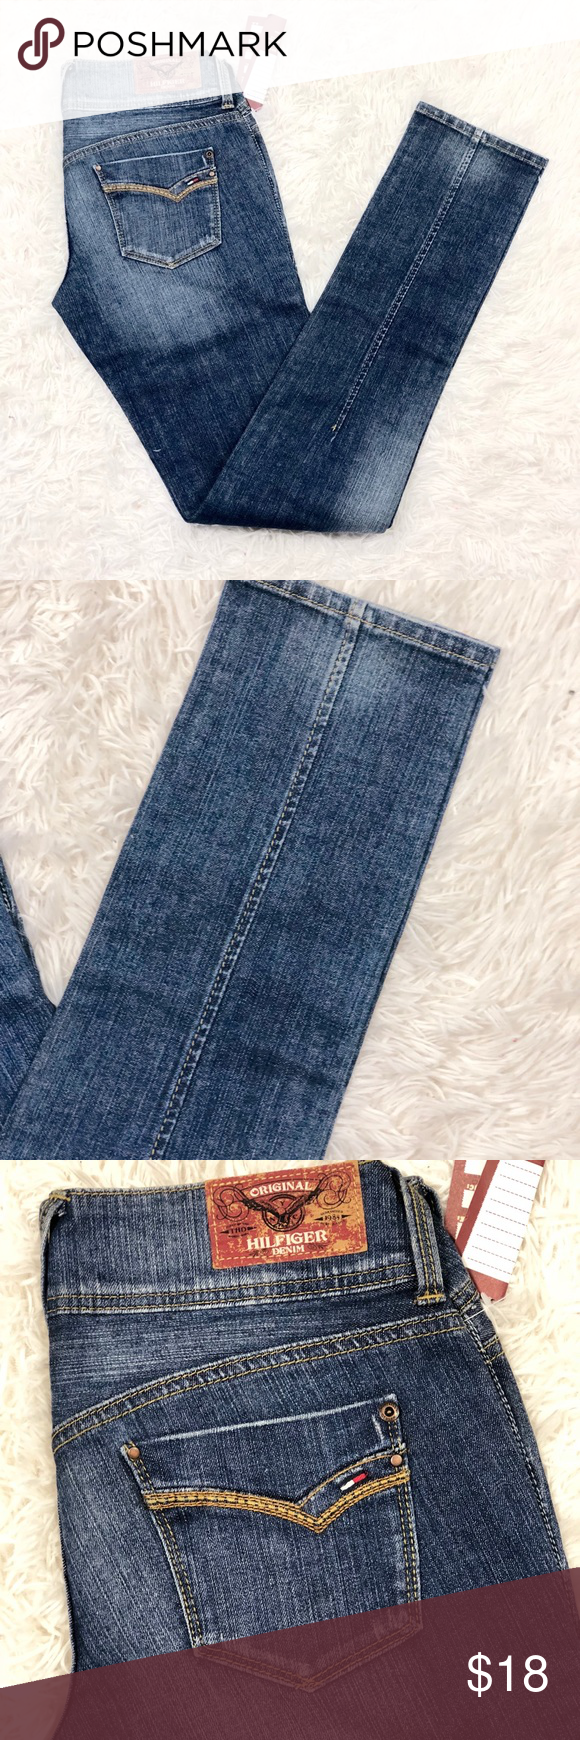 d4f7d208 Tommy Hilfiger Slim Fit Jeans New with Tags- Does have a factory defect  (mark on Leg) Please See last Photo Tommy Hilfiger Womens Slim Jeans W28 X  L34 ...